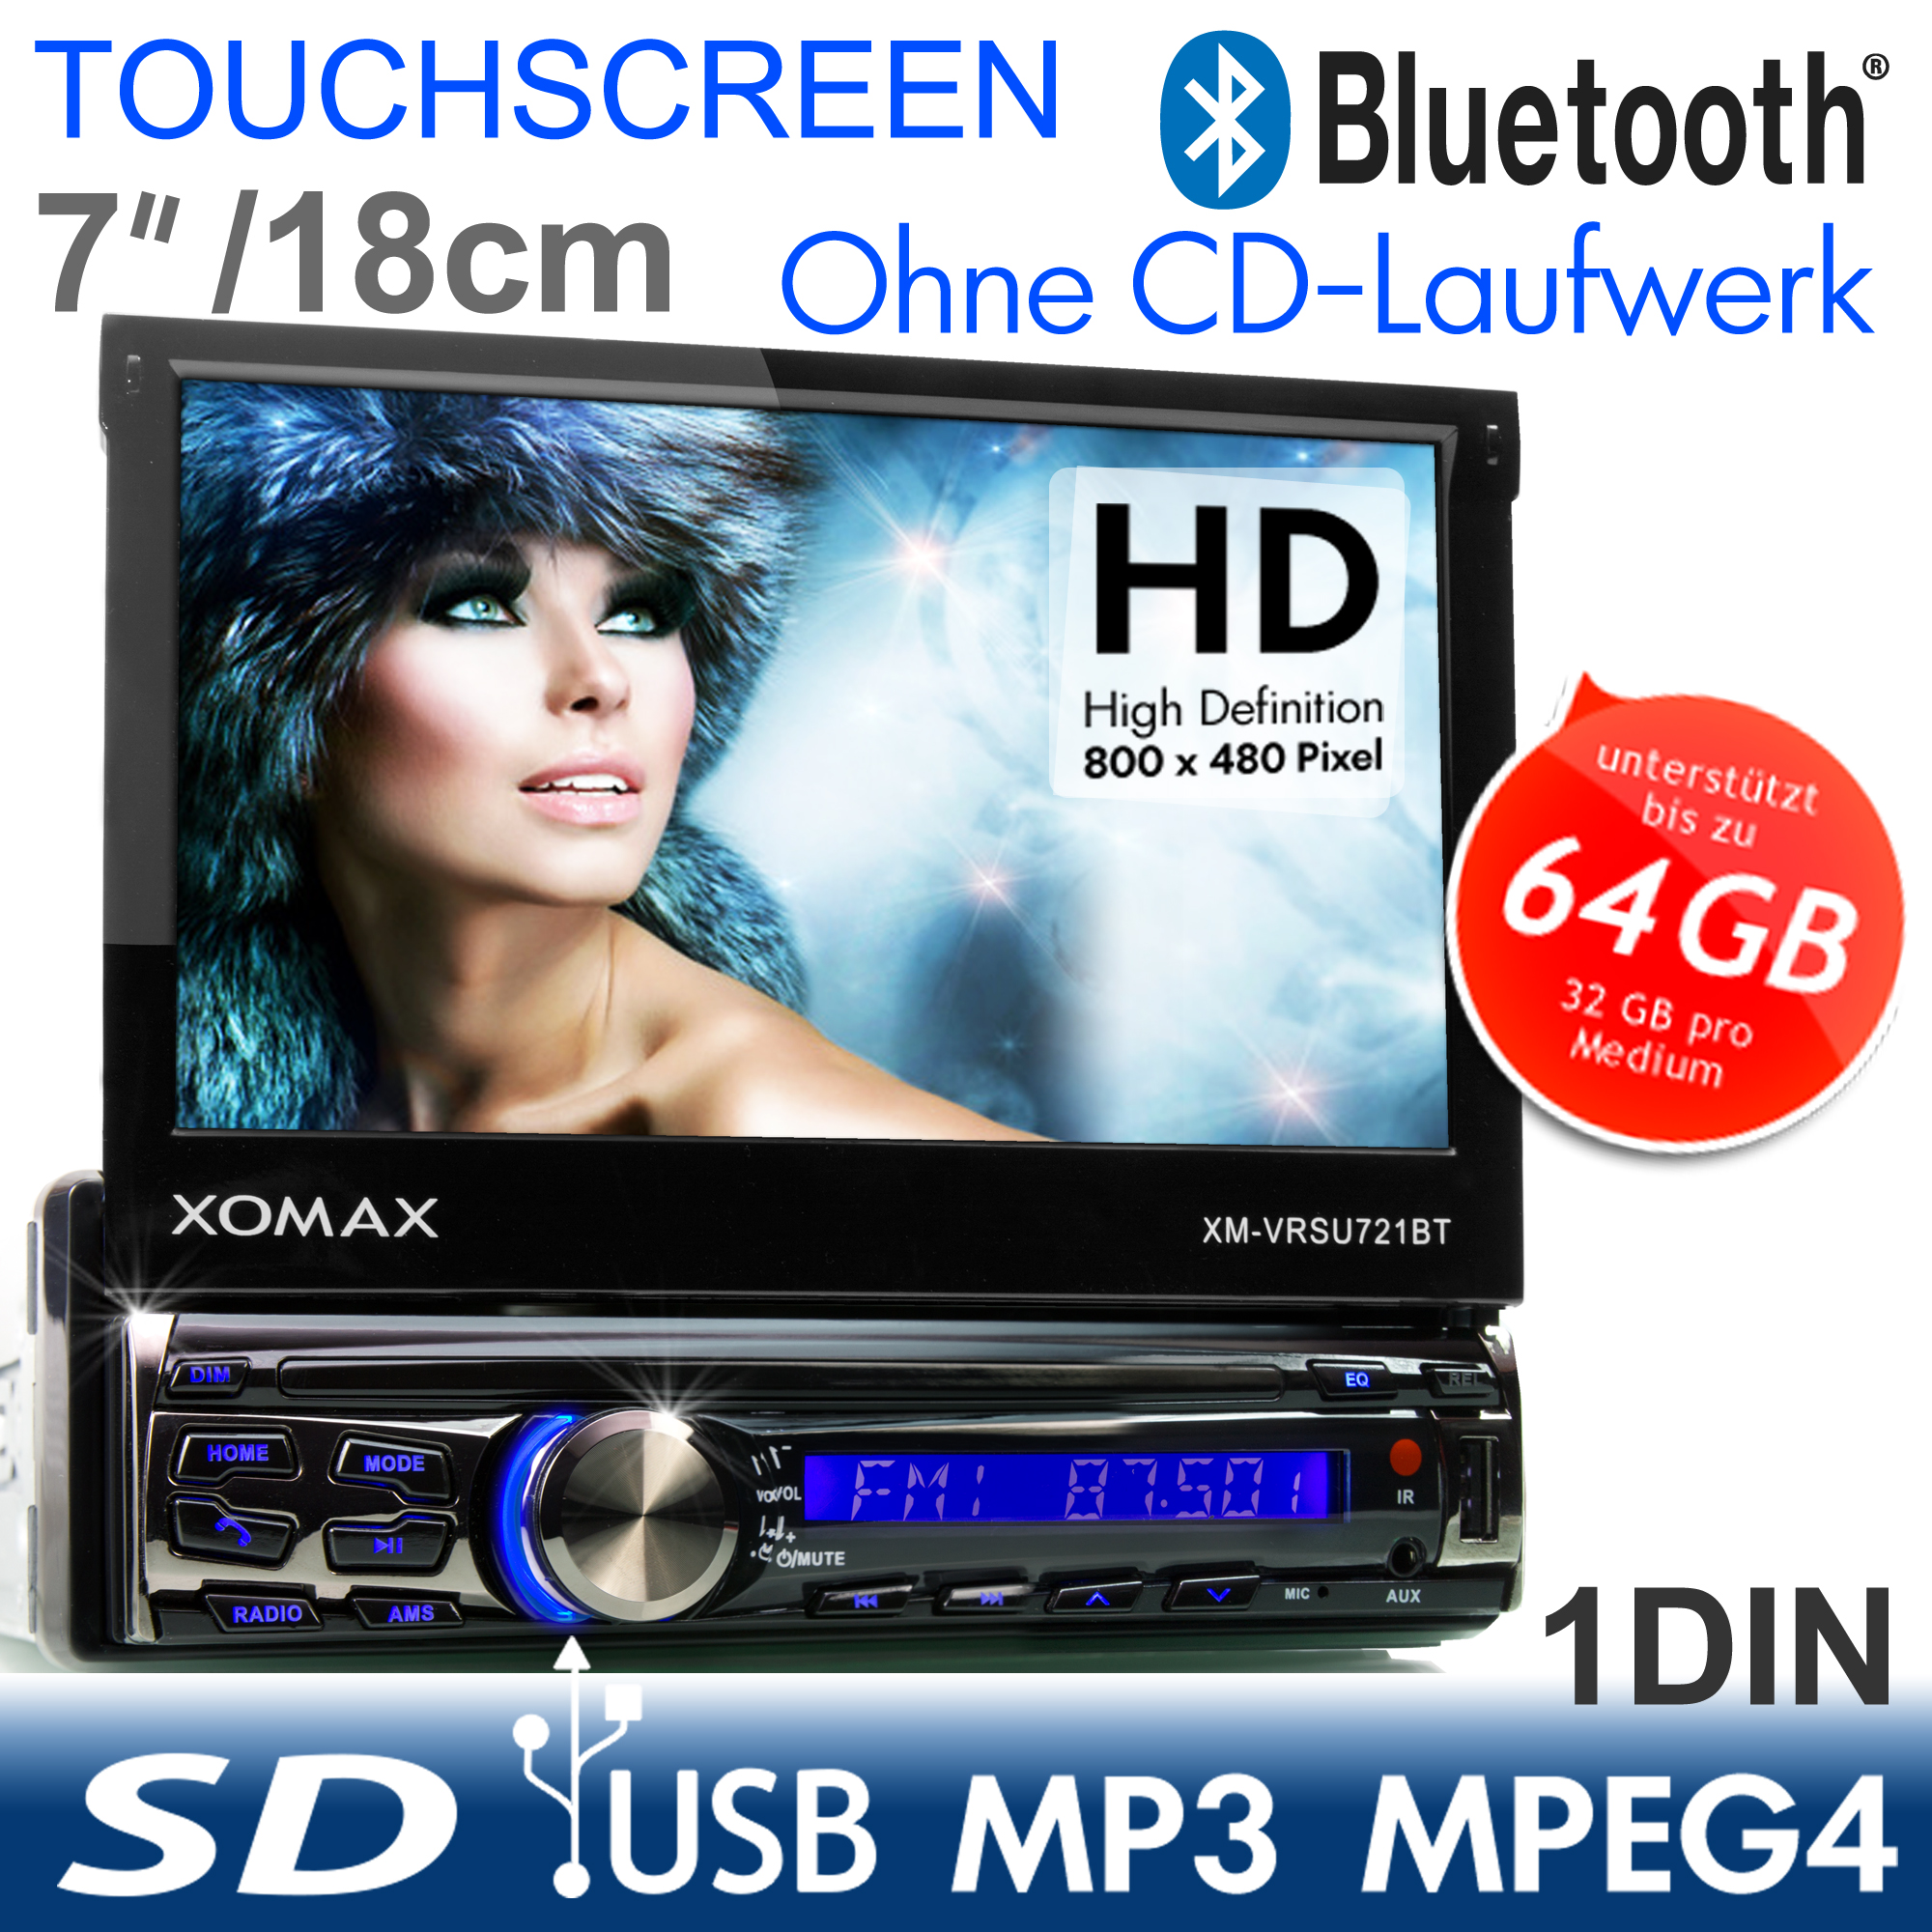 xomax xm vrsu 721bt car radio bluetooth touchscreen usb sd. Black Bedroom Furniture Sets. Home Design Ideas